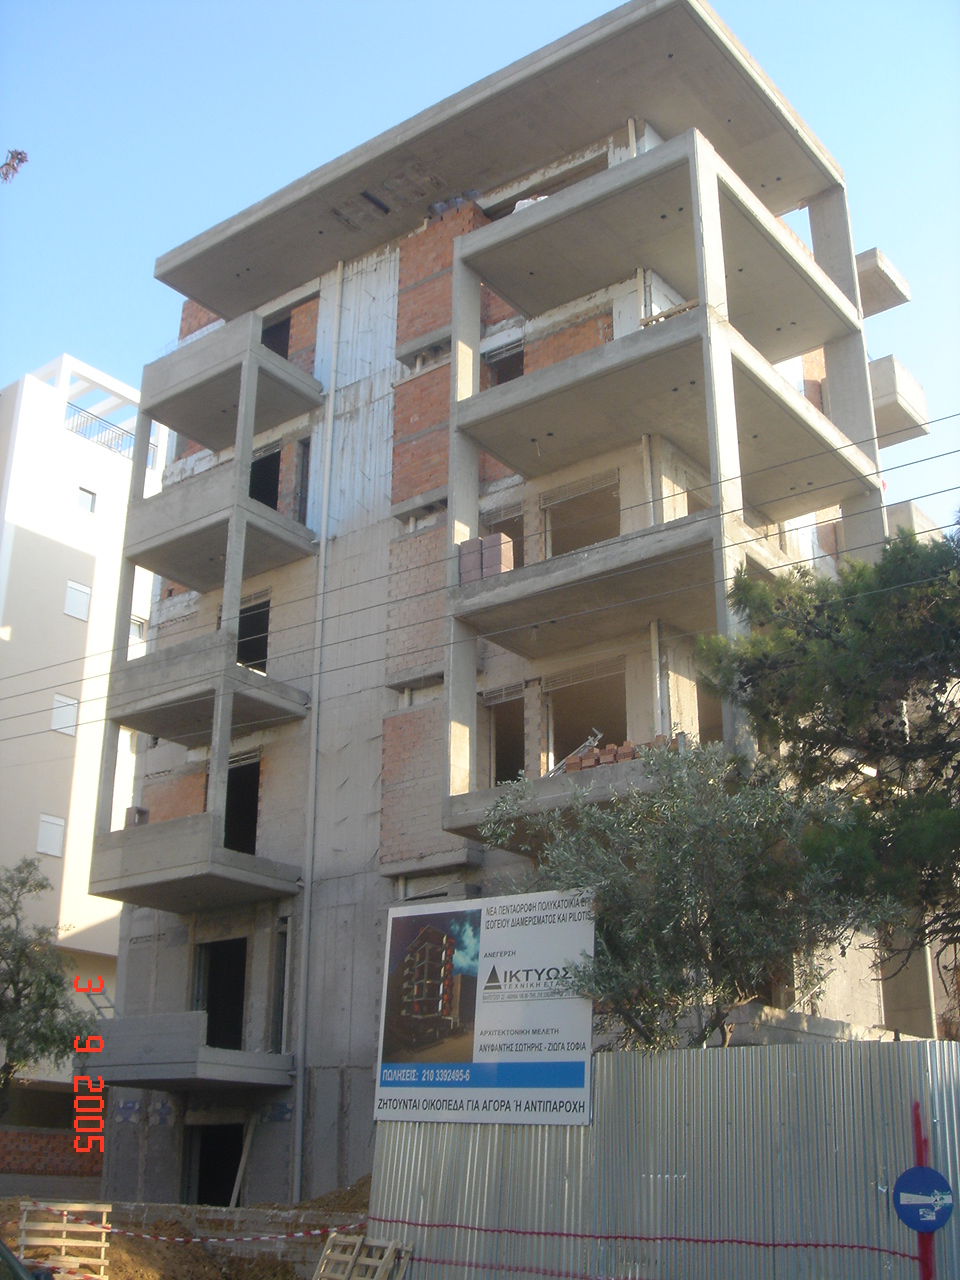 6-storey Apartment Building